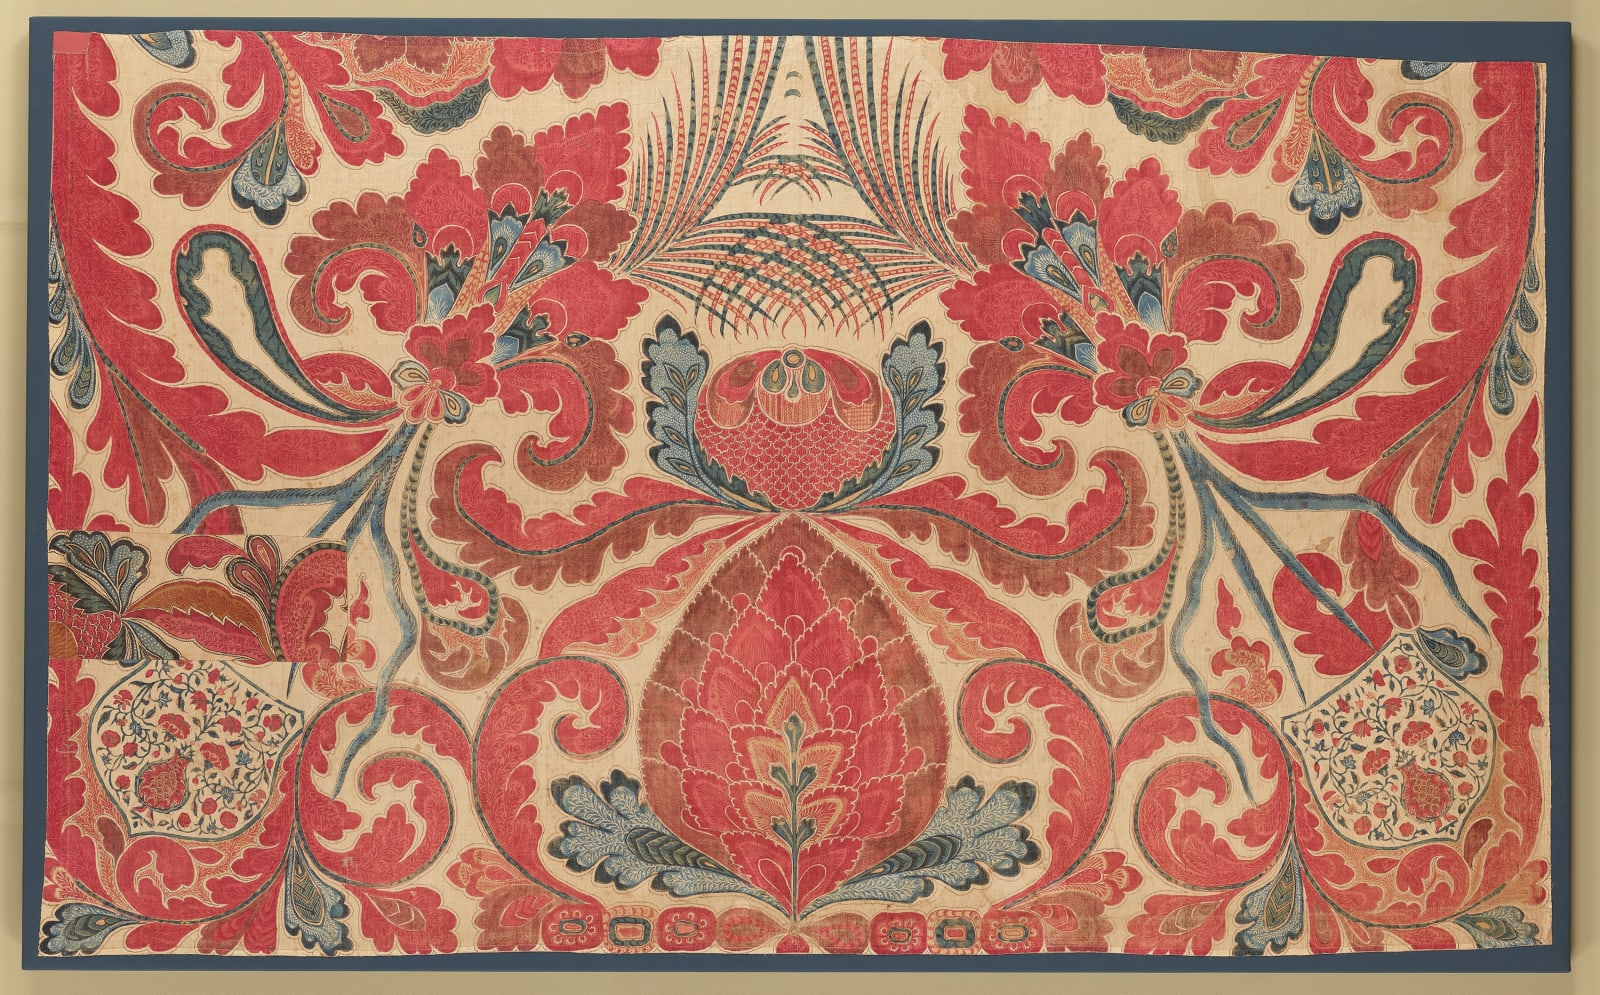 Large panel from a bedcover or hanging (palampore), Coromandel Coast for the European (probably Dutch) market, first half of the eighteenth century